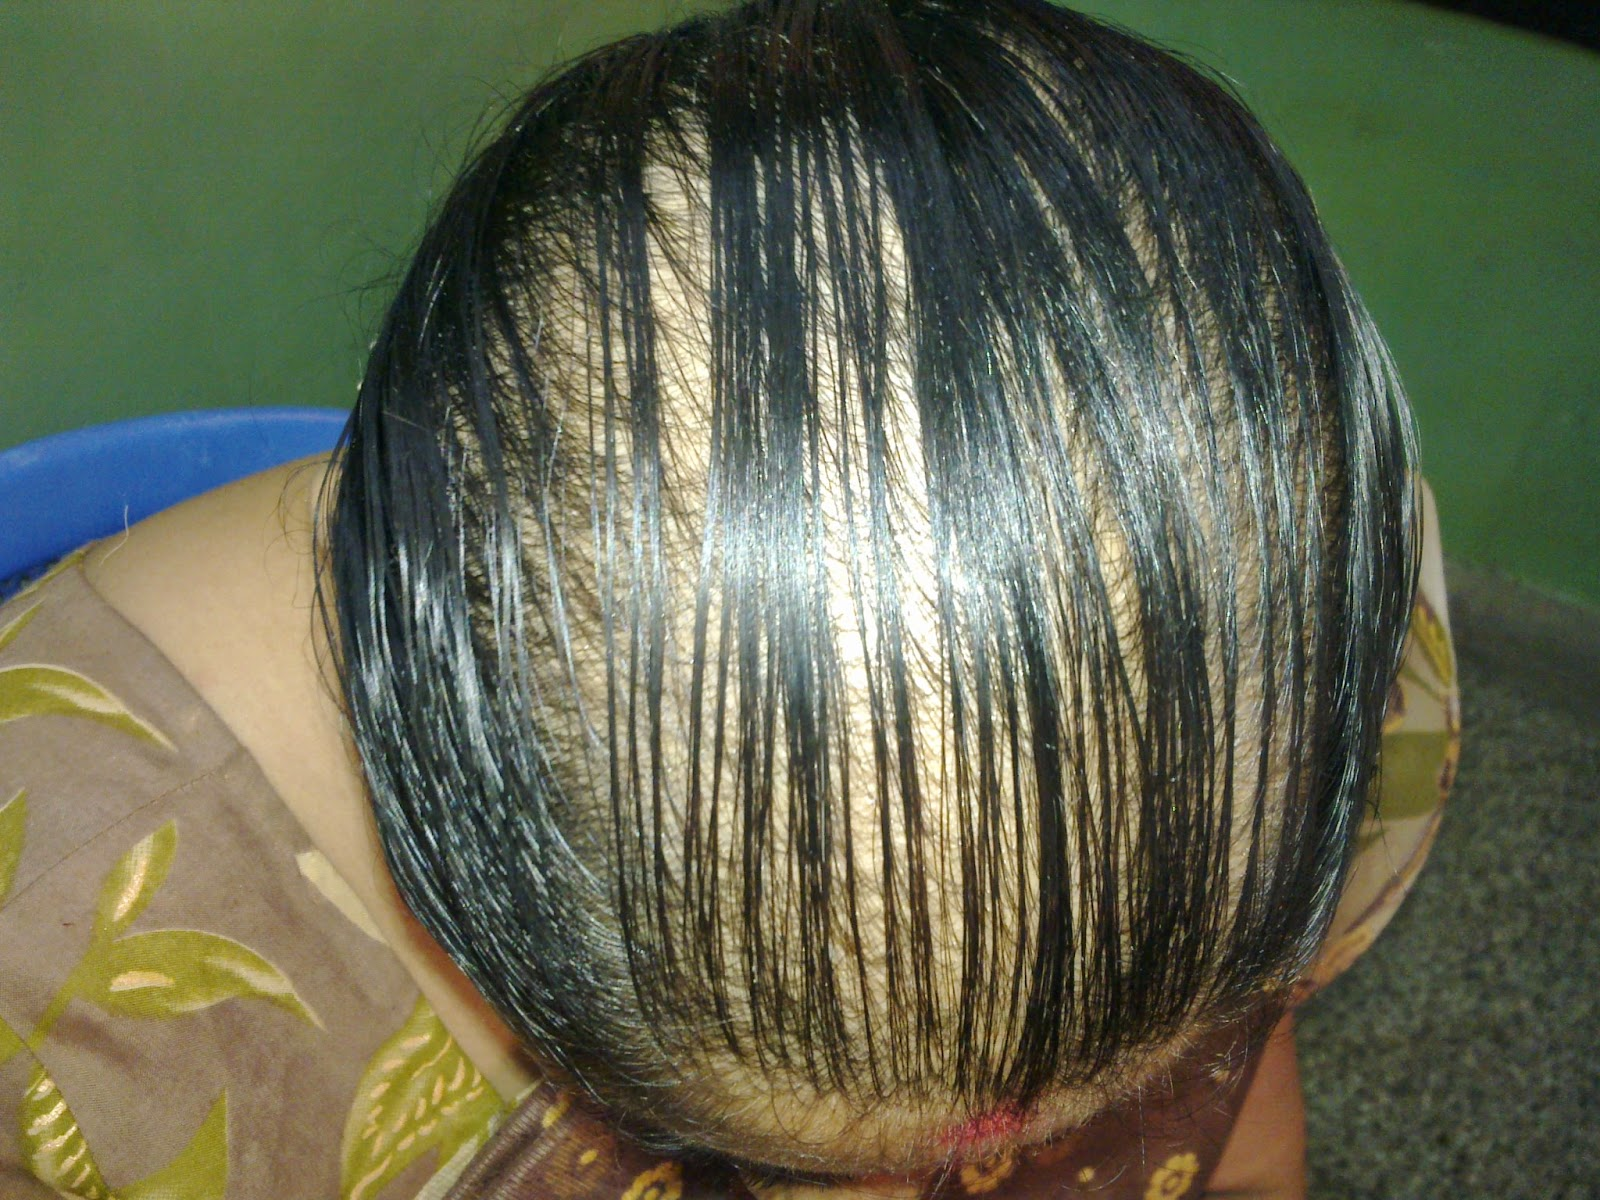 Female Pattern Baldness: Female pattern baldness (Alopecia in women; Baldness - female; Hair loss in women; Androgenic alopecia in women) involves a typical pattern of loss of hair in women, caused by hormones, aging, and genes.    Causes  • A hair grows from its follicle at an average rate of about 1/2 inch per month. Each hair grows for 2 to 6 years, then rests, and then falls out. A new hair soon begins growing in its place. At any time, about 85% of the hair is growing and 15% is resting.  • Baldness occurs when hair falls out but new hair does not grow in its place. The cause of the failure to grow new hair in female pattern baldness is not well understood, but it is associated with genetic predisposition, aging, and levels of endocrine hormones (particularly androgens, the male sex hormones).  • Changes in the levels of androgens can affect hair production. For example, after the hormonal changes of menopause , many women find that the hair on the head is thinned, while facial hair is coarser. Although new hair is not produced, follicles remain alive, suggesting the possibility of new hair growth.  • Female pattern baldness is usually different from that of male pattern baldness . The hair thins all over the head, but the frontal hairline is maintained. There may be a moderate loss of hair on the crown, but this rarely progresses to total or near baldness as it may in men.  Hair loss can occur in women for reasons other than female pattern baldness, including the following:  • Temporary shedding of hair (telogen effluvium) • Breaking of hair (from such things as styling treatments and twisting or pulling of hair) • Patchy areas of total hair loss (alopecia areata -- an immune disorder causing temporary hair loss) • Medications • Certain skin diseases • Hormonal abnormalities • Iron deficiency • Underactive thyroid • Vitamin deficiency  Symptoms Thinning of hair over the entire head • Hair loss at the crown or hairline, mild to moderate  Exams and Tests • Female pattern baldness is usually diagnosed based on the appearance and pattern of hair loss and by ruling out other causes of hair loss. • A skin biopsy or other procedures may be used to diagnose medical disorders that cause loss of hair. • Analysis of the hair itself is not accurate for diagnosing nutritional or similar causes of hair loss,    Treatment for Female pattern baldness Symptomatic Homeopathy medicines act well for Female Pattern baldness   Whom to contact for Female pattern Baldness – FPB Treatment  Dr.Senthil Kumar Treats many cases of Female pattern Baldness – FPB, In his medical professional experience with successful results. Many patients get relief after taking treatment from Dr.Senthil Kumar.  Dr.Senthil Kumar visits Chennai at Vivekanantha Homeopathy Clinic, Velachery, Chennai 42. To get appointment please call 9786901830, +91 94430 54168 or mail to consult.ur.dr@gmail.com,    For more details & Consultation Feel free to contact us. Vivekanantha Clinic Consultation Champers at Chennai:- 9786901830  Panruti:- 9443054168  Pondicherry:- 9865212055 (Camp) Mail : consult.ur.dr@gmail.com, homoeokumar@gmail.com   For appointment please Call us or Mail Us  For appointment: SMS your Name -Age – Mobile Number - Problem in Single word - date and day - Place of appointment (Eg: Rajini – 30 - 99xxxxxxx0 – Female pattern Baldness – FPB – 21st Oct, Sunday - Chennai ), You will receive Appointment details through SMS.